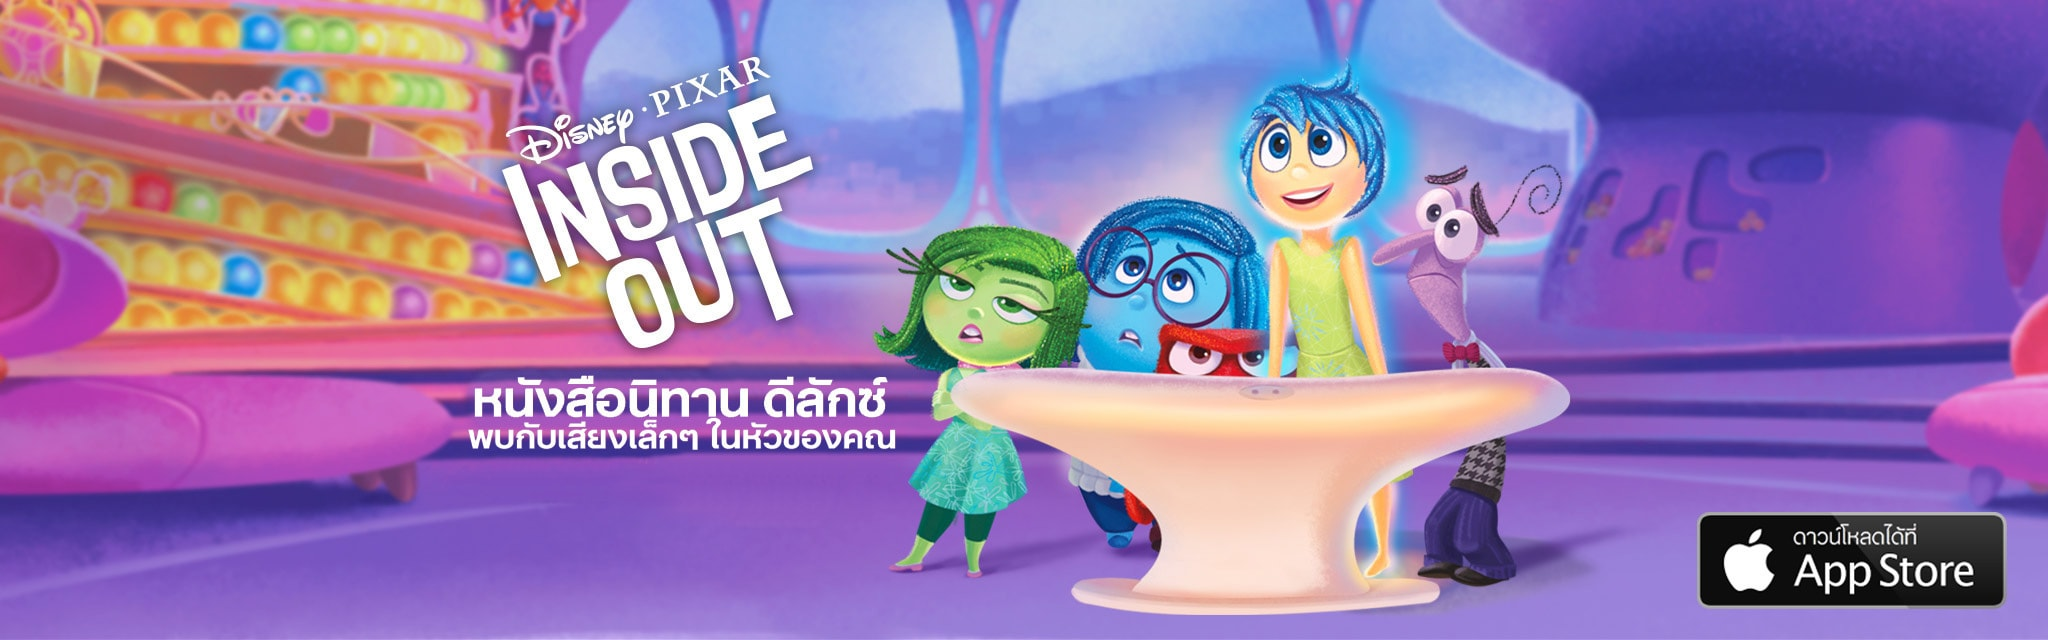 Inside Out: Storybook Deluxe App Page Hero - TH